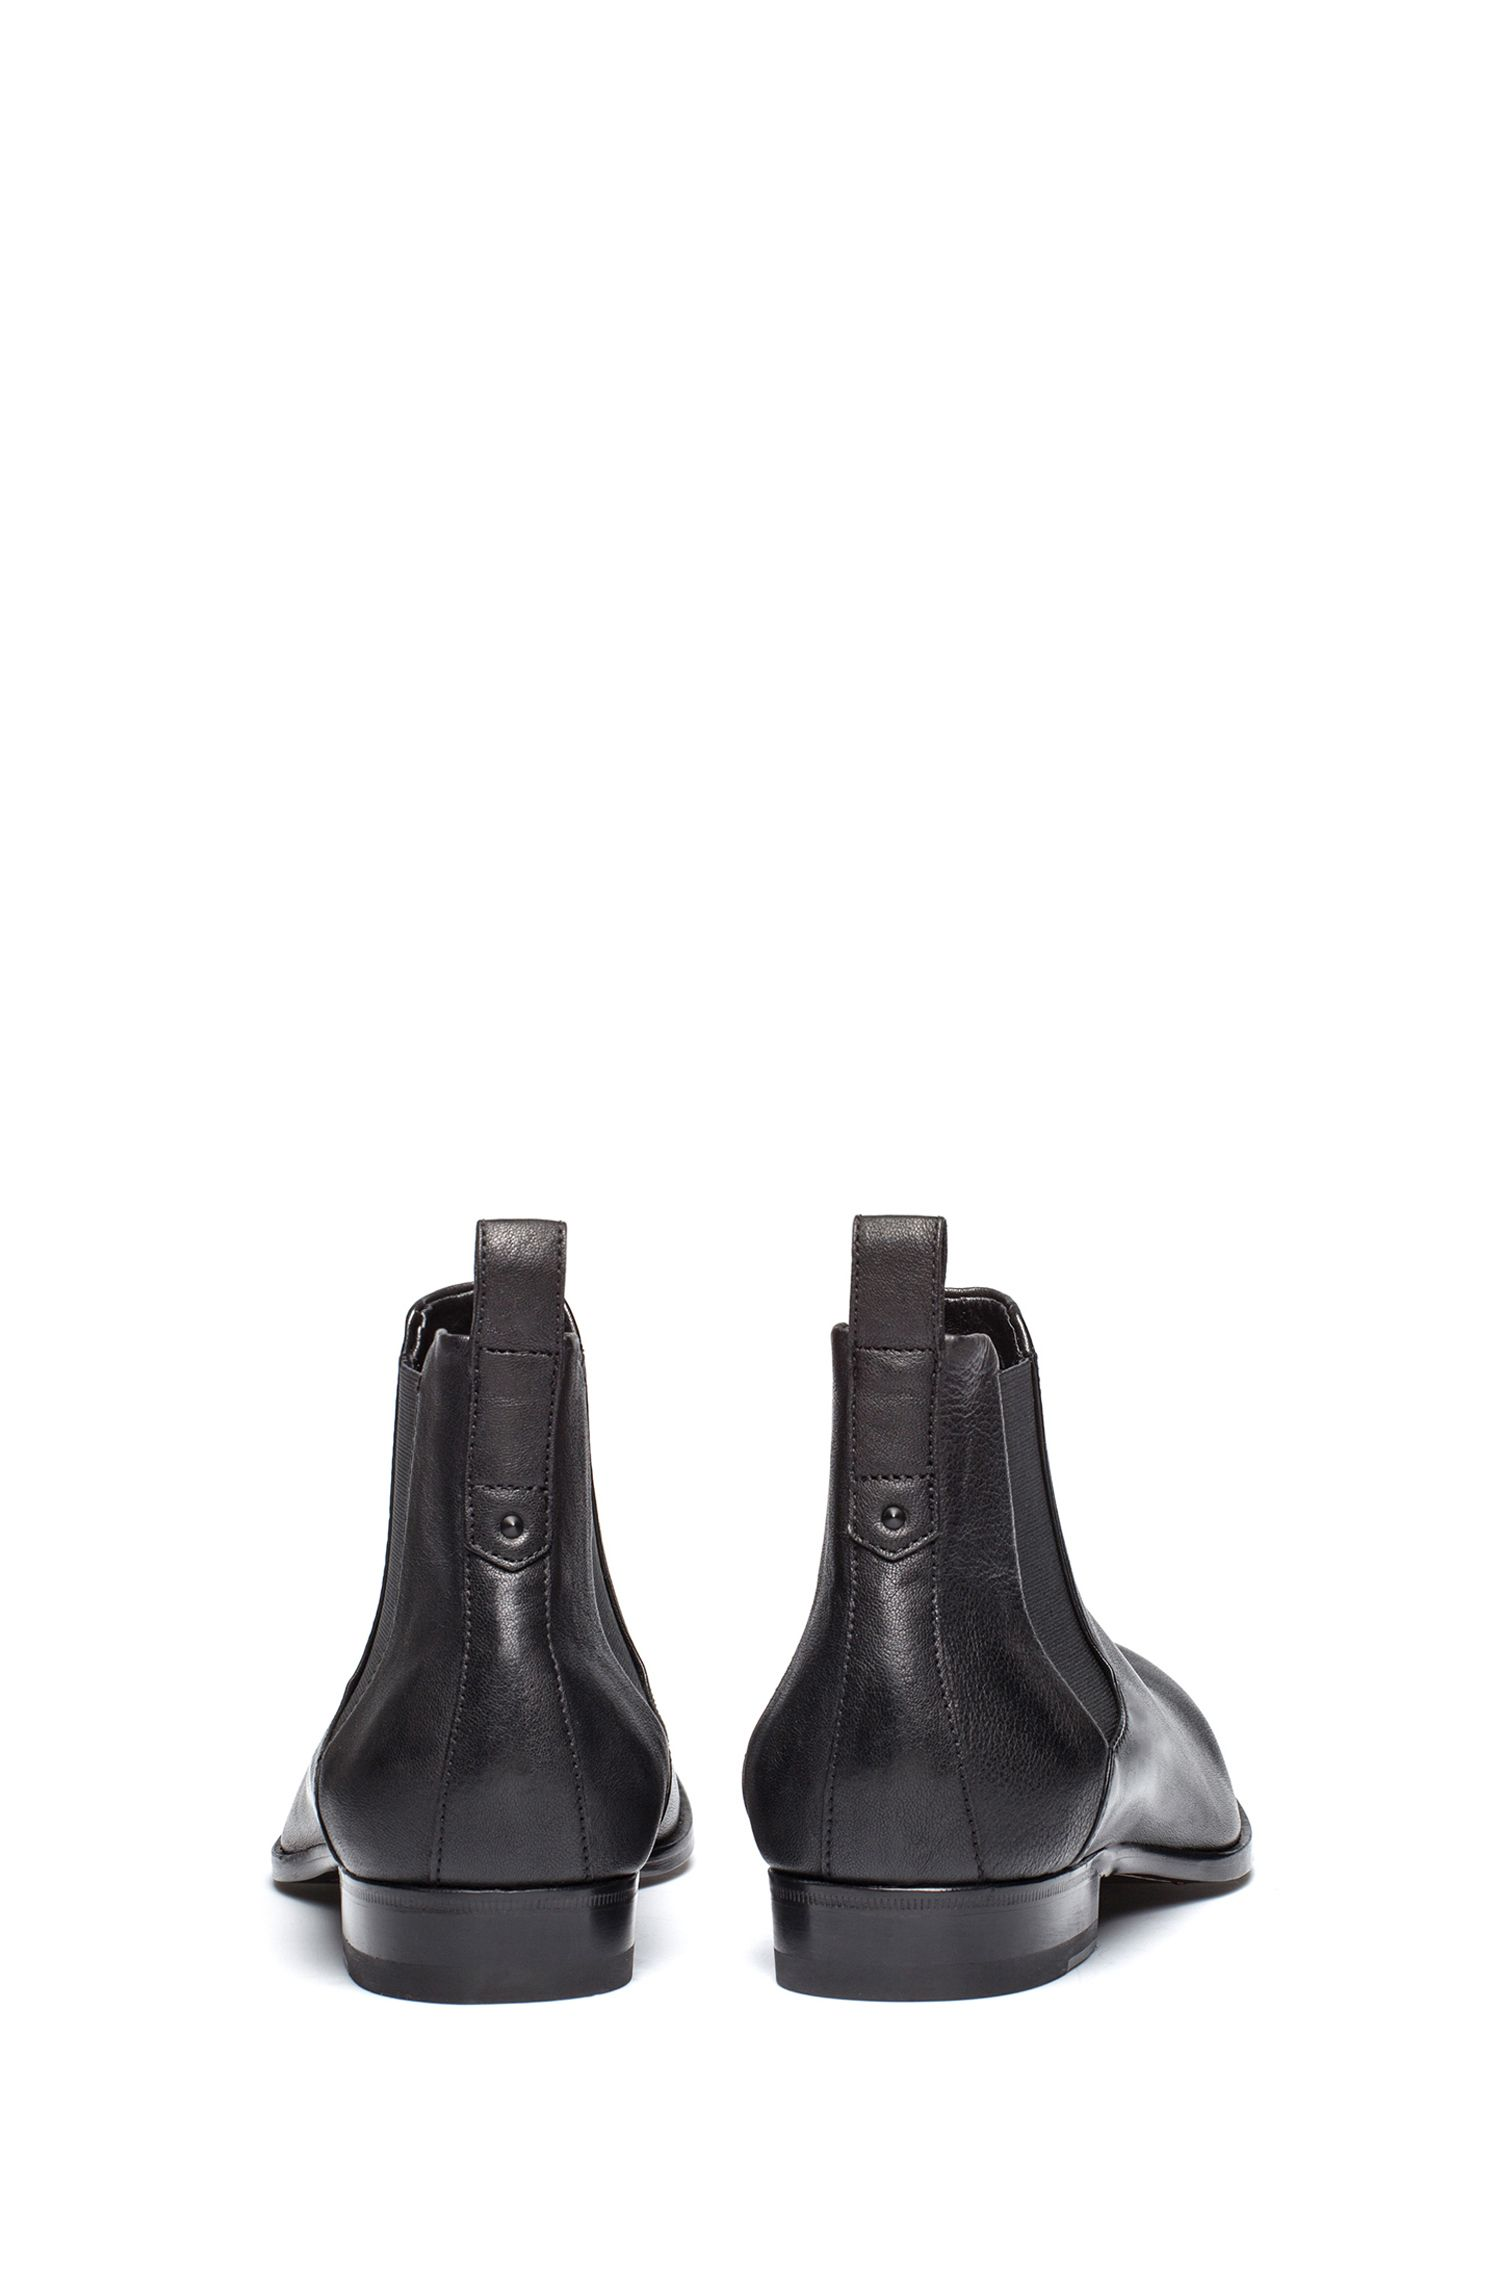 Chelsea boots in grained leather with a distinctive heel HUGO BOSS